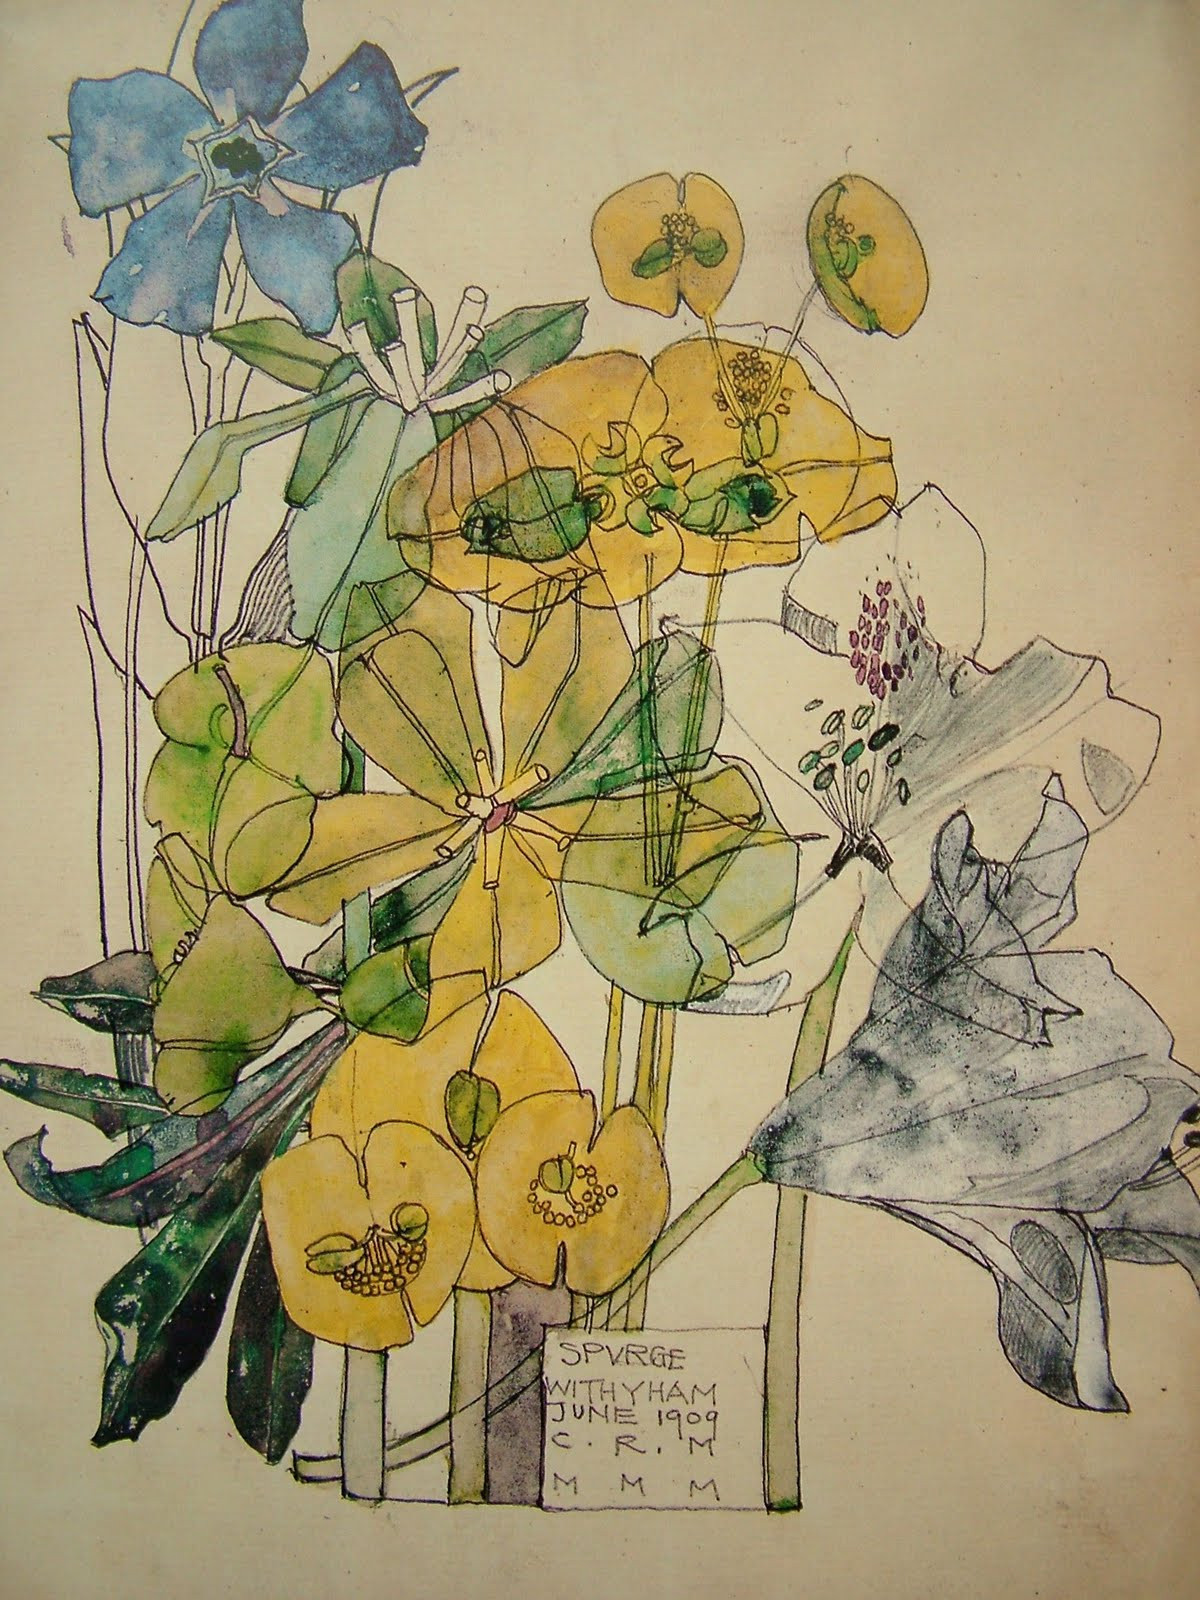 charles rennie mackintosh Charles rennie mackintosh (7 june 1868 – 10 december 1928) was a scottish architect, designer and watercolourist he was a designer in the arts and crafts movement and also the main exponent of art nouveau in the united kingdom.